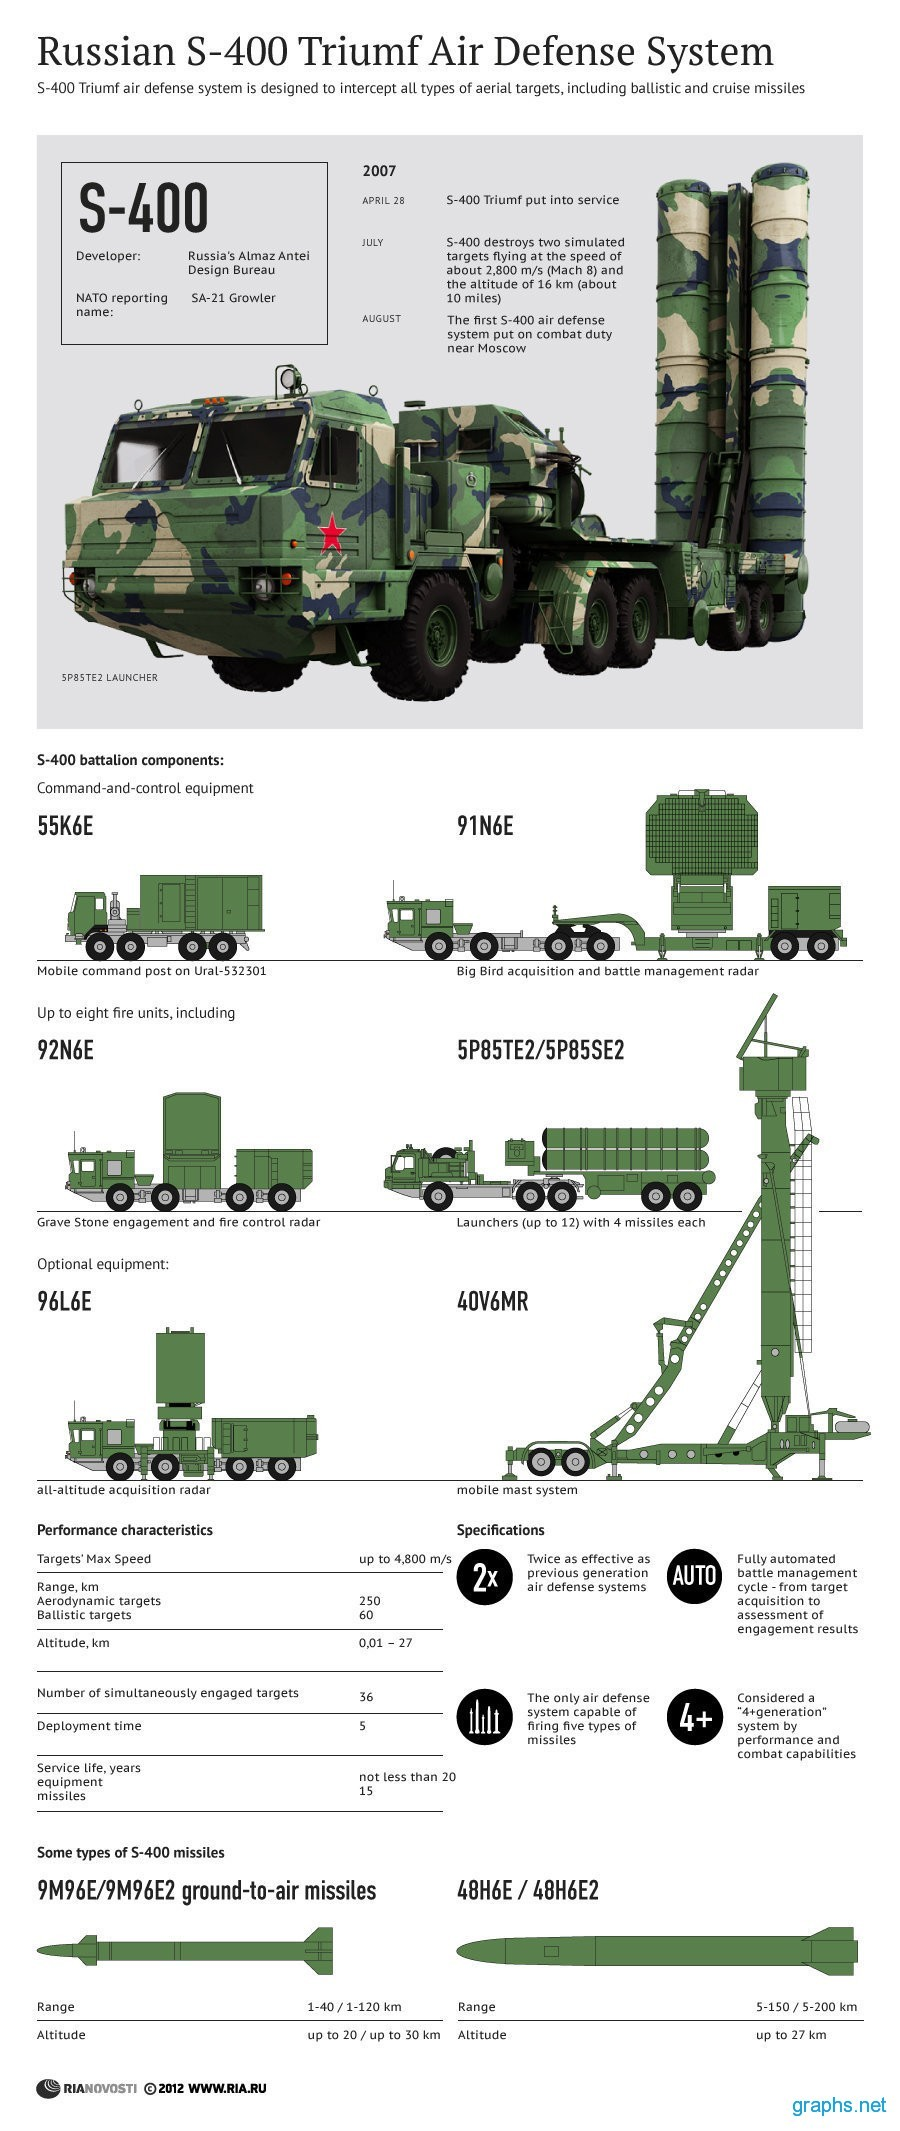 S-400 Triumf Air Defense System